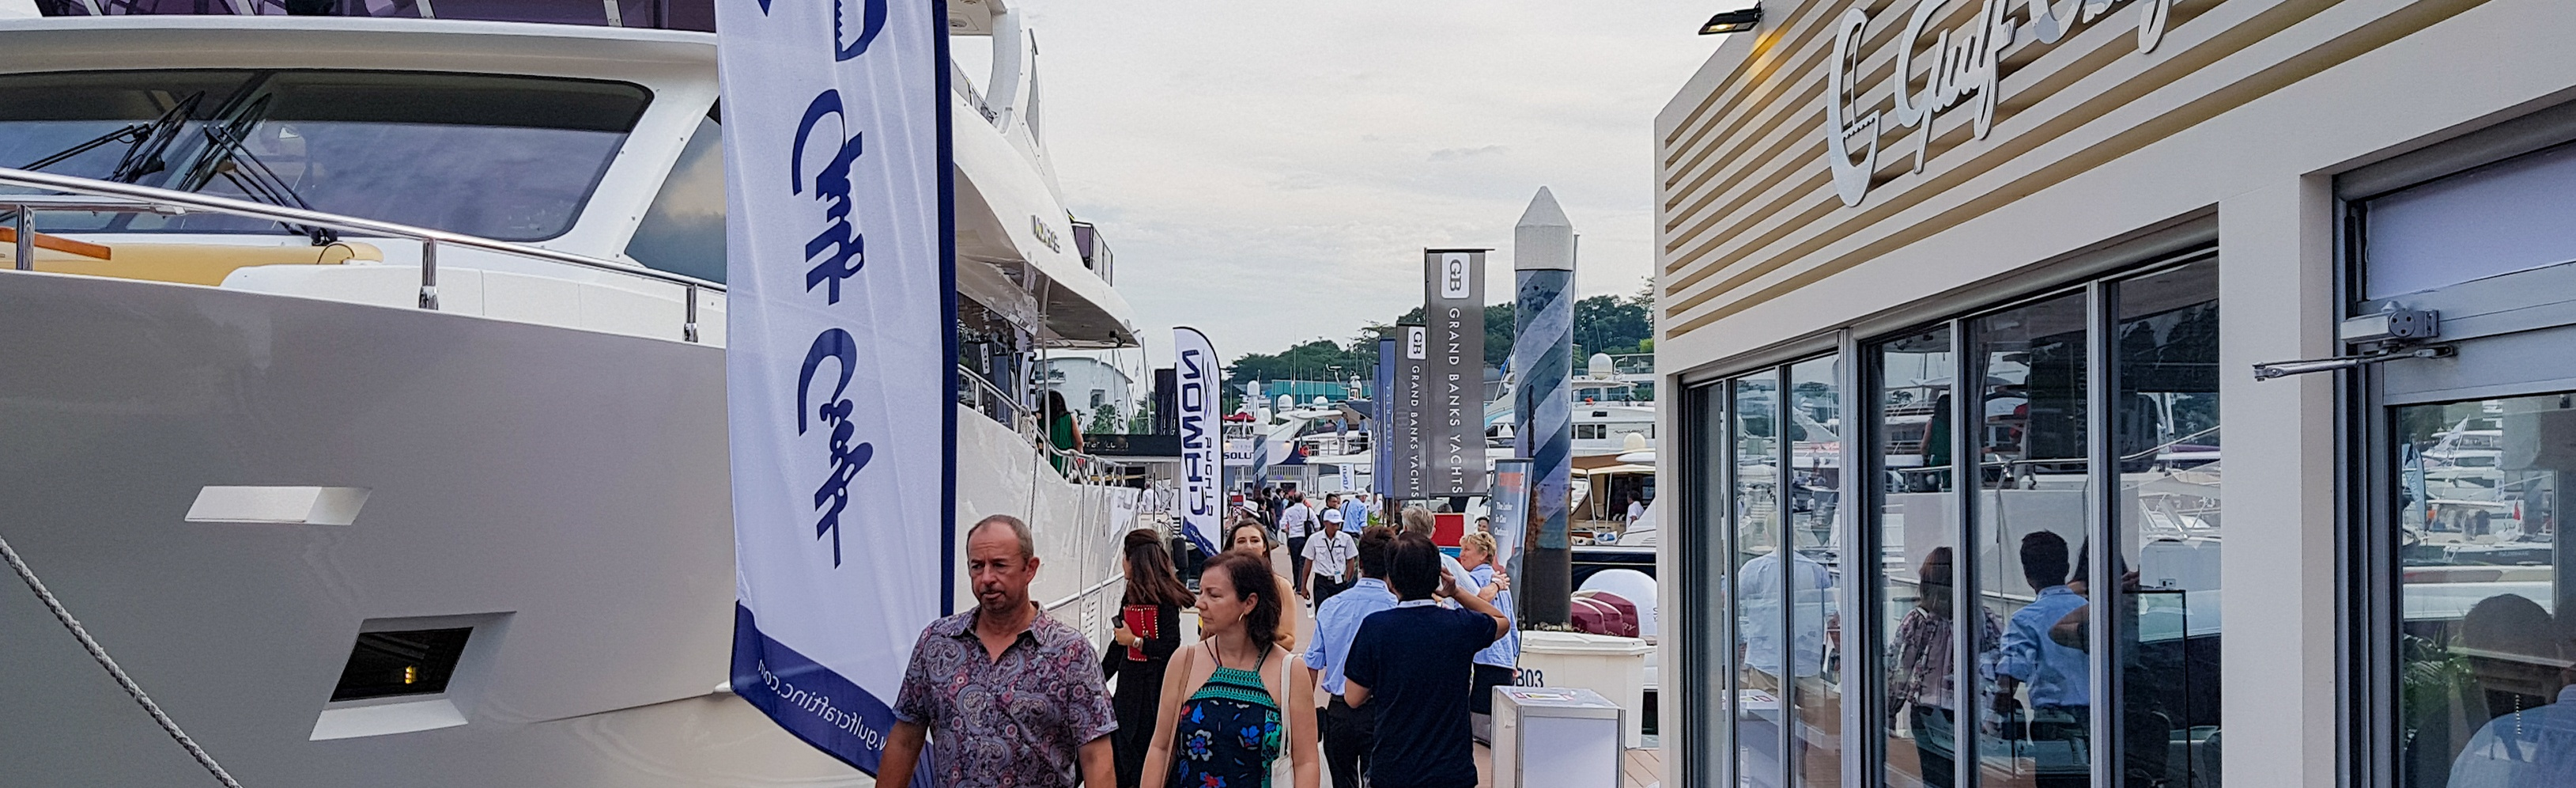 Singapore-Yacht-Show-2018,-Gulf-Craft